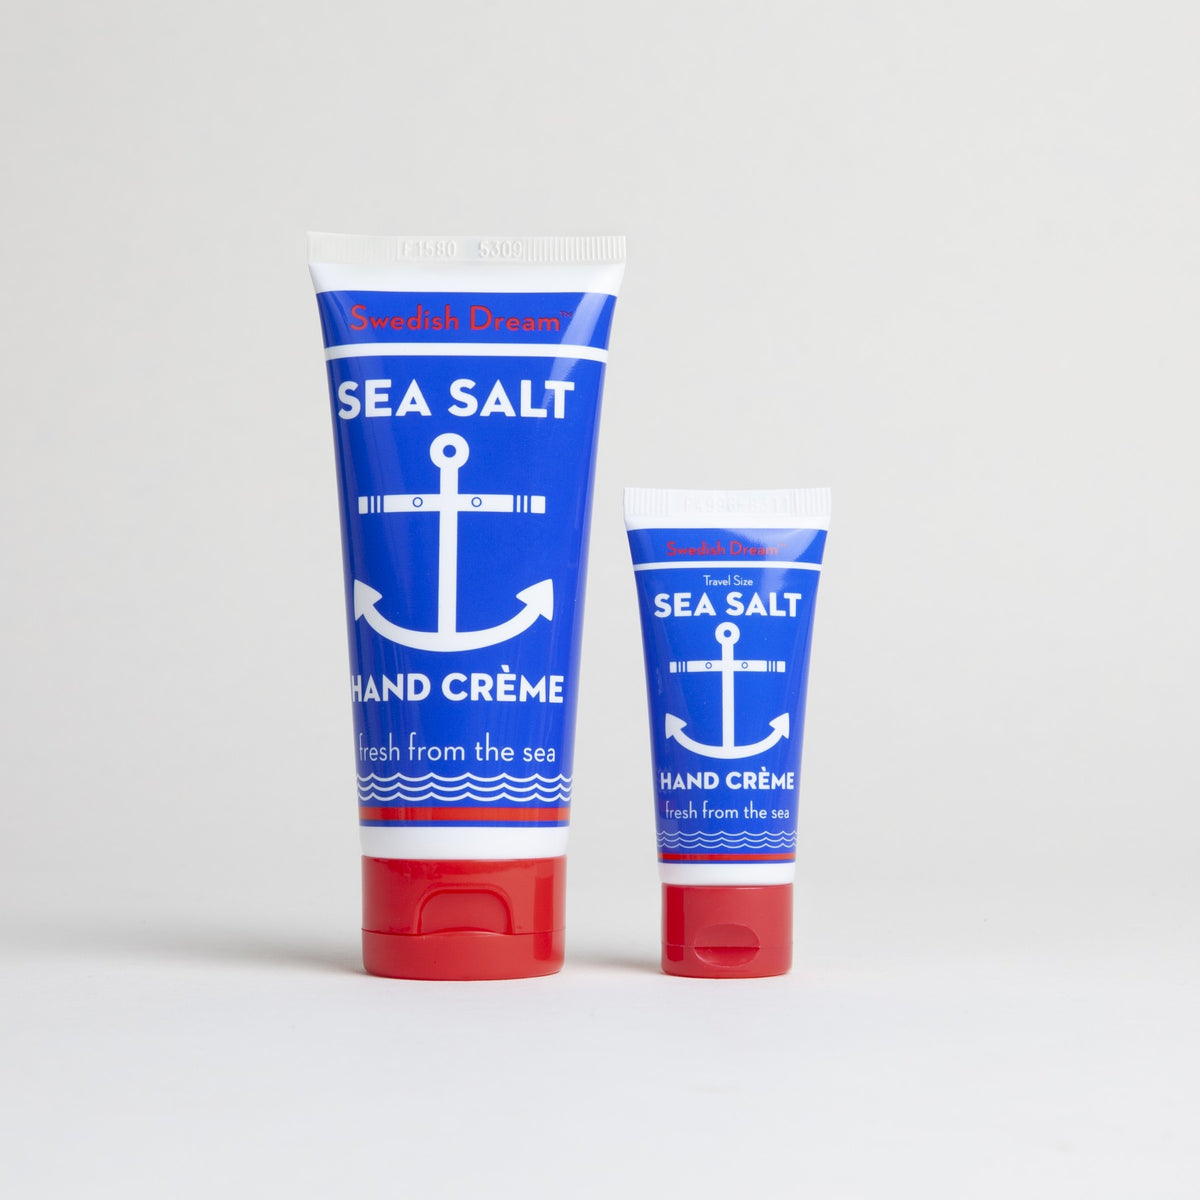 Swedish Dream Sea Salt Hand Creme Travel Size